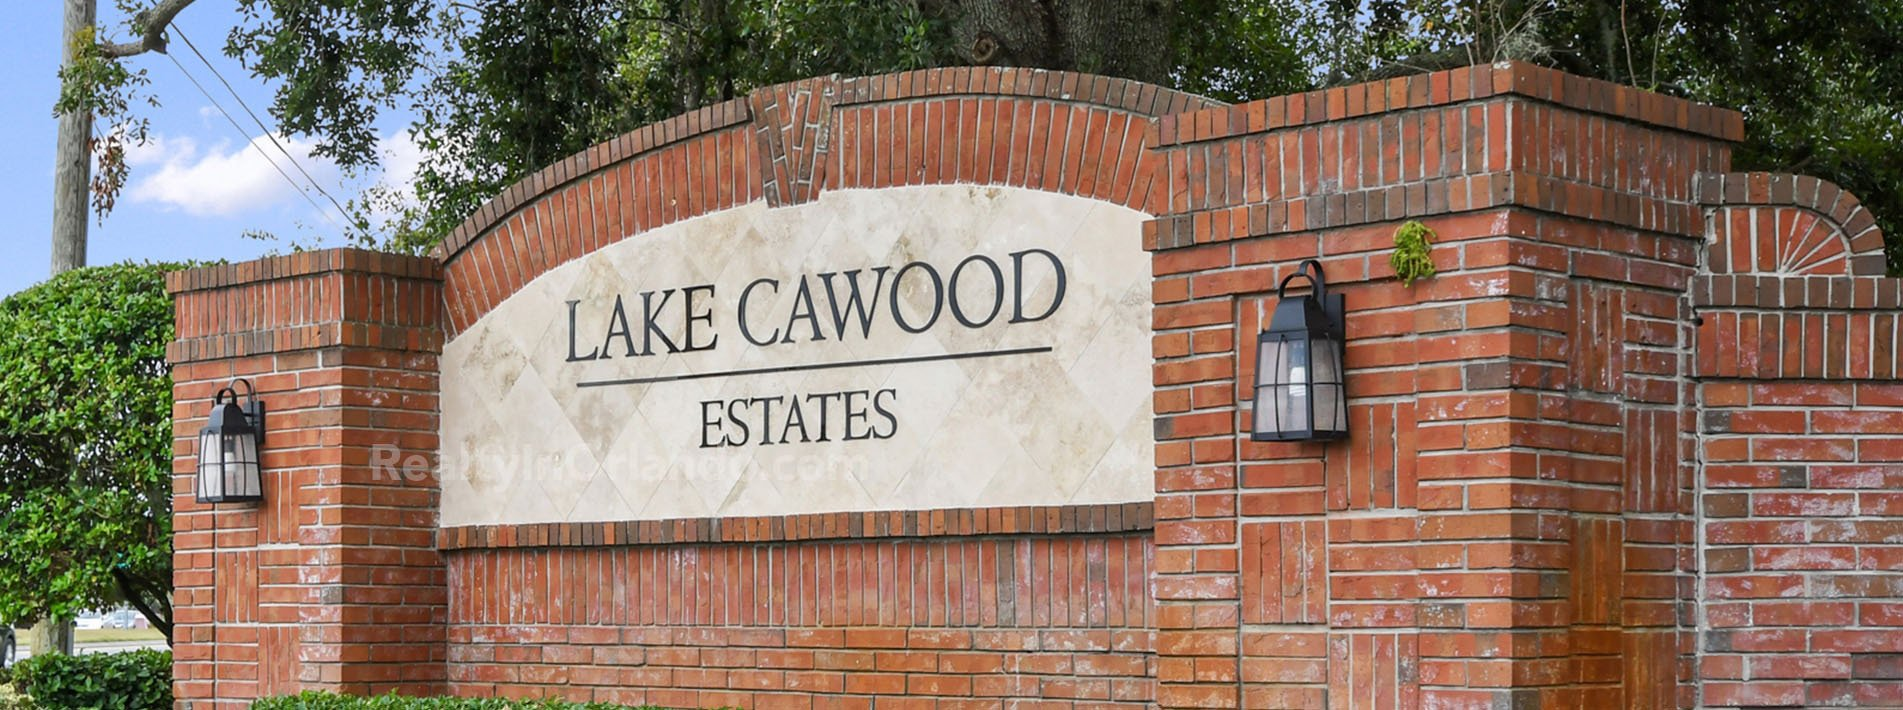 Lake Cawood Estates Windermere